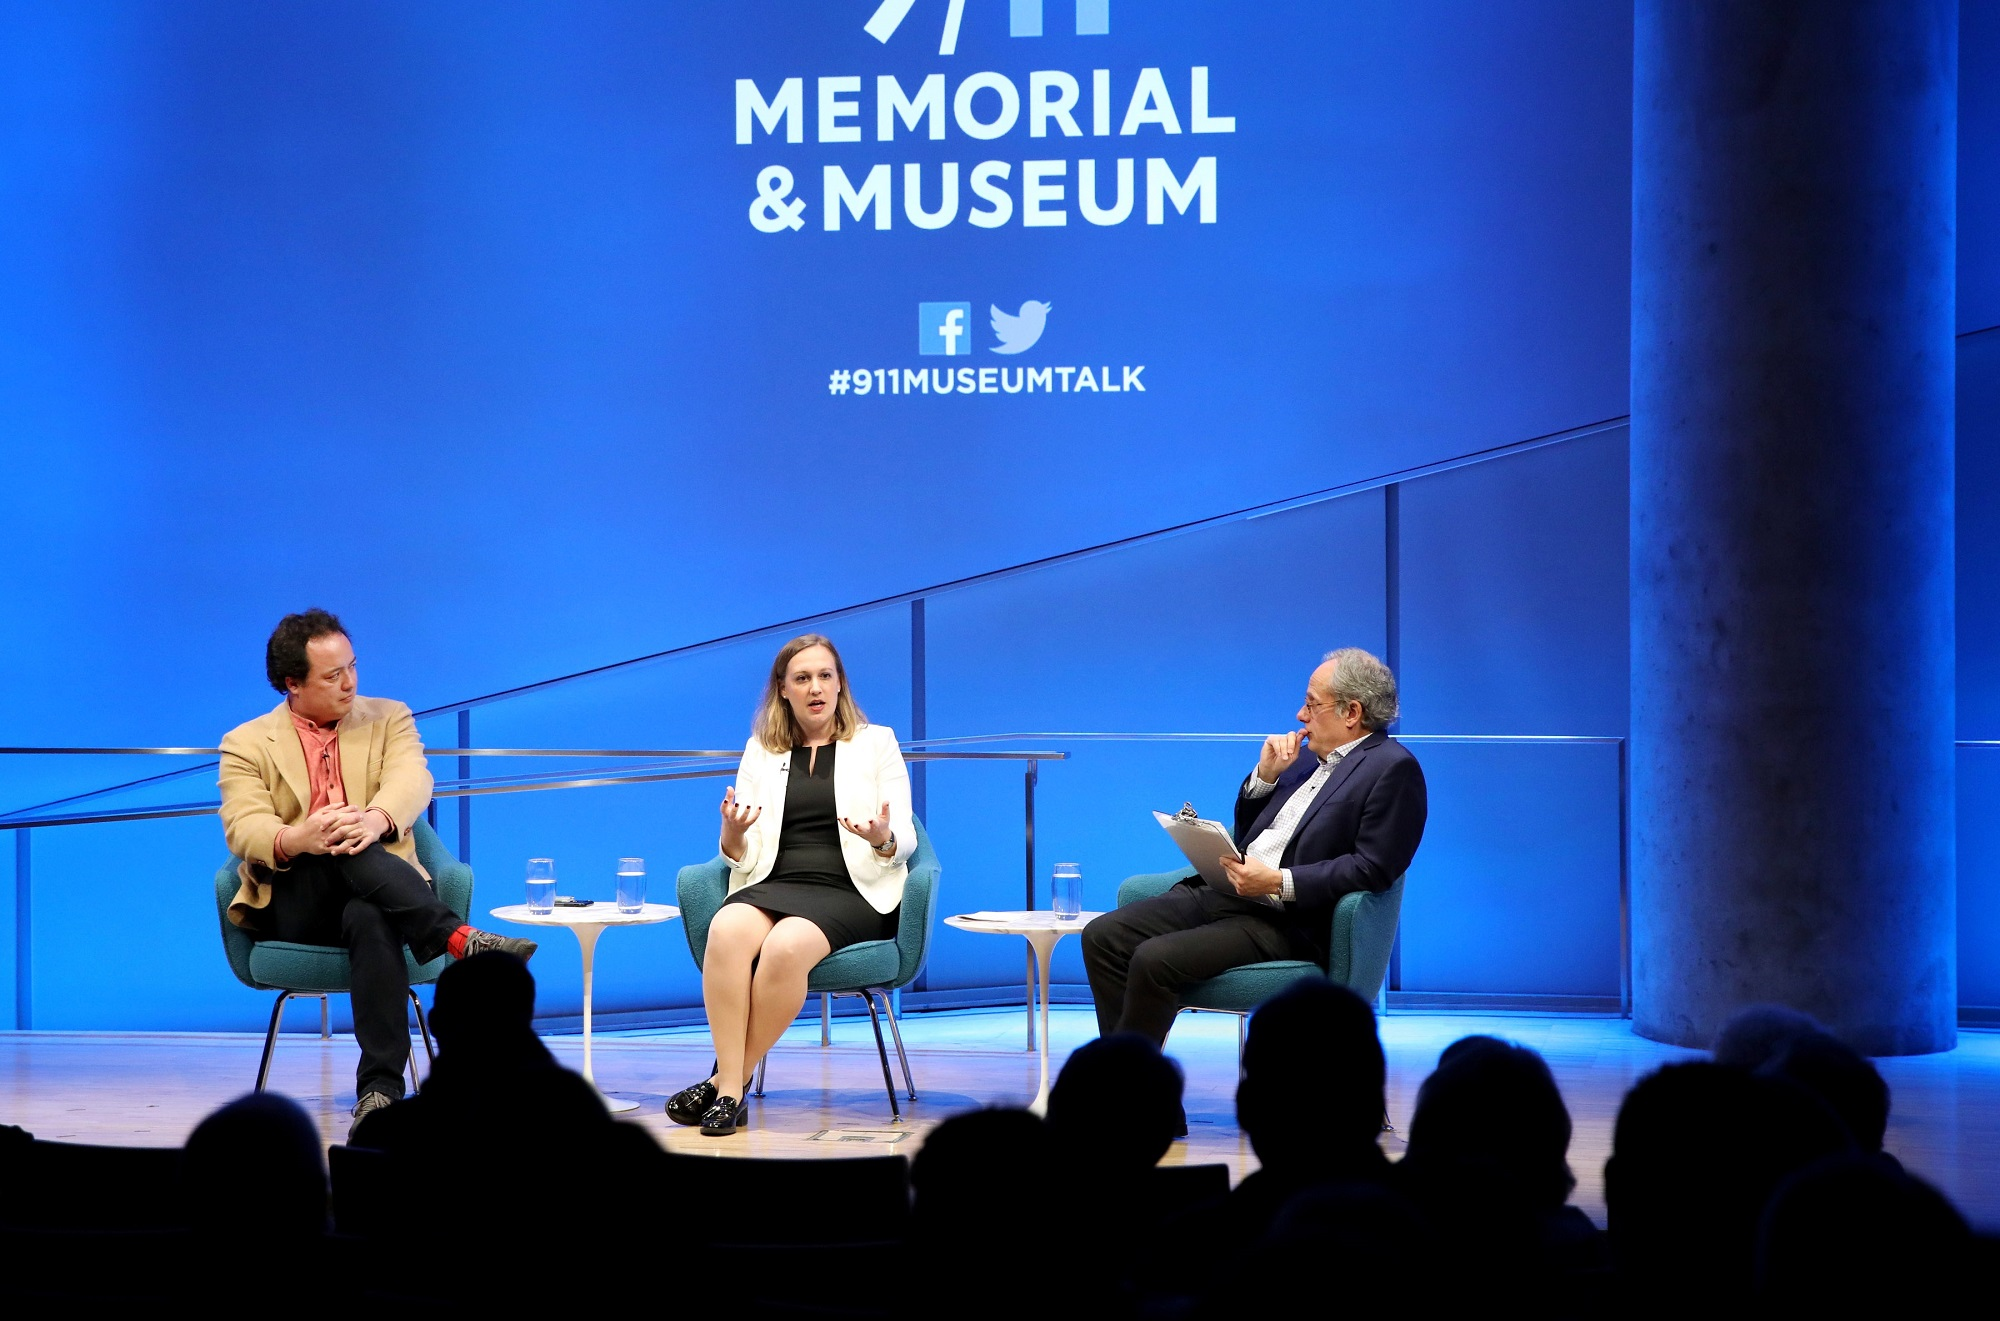 A wide-angle photo of the Museum Auditorium stage shows Devorah Margolin of George Washington University, Graeme Wood of The Atlantic and and Clifford Chanin, the executive vice president and deputy director for museum programs, taking part in a public program. Margolin is seated at the center of the stage gesturing with both hands as she speaks to the audience. Wood is to her right with his hands on his knee and Chanin is to her left holding a clipboard. Audience members are silhouetted in the foreground.